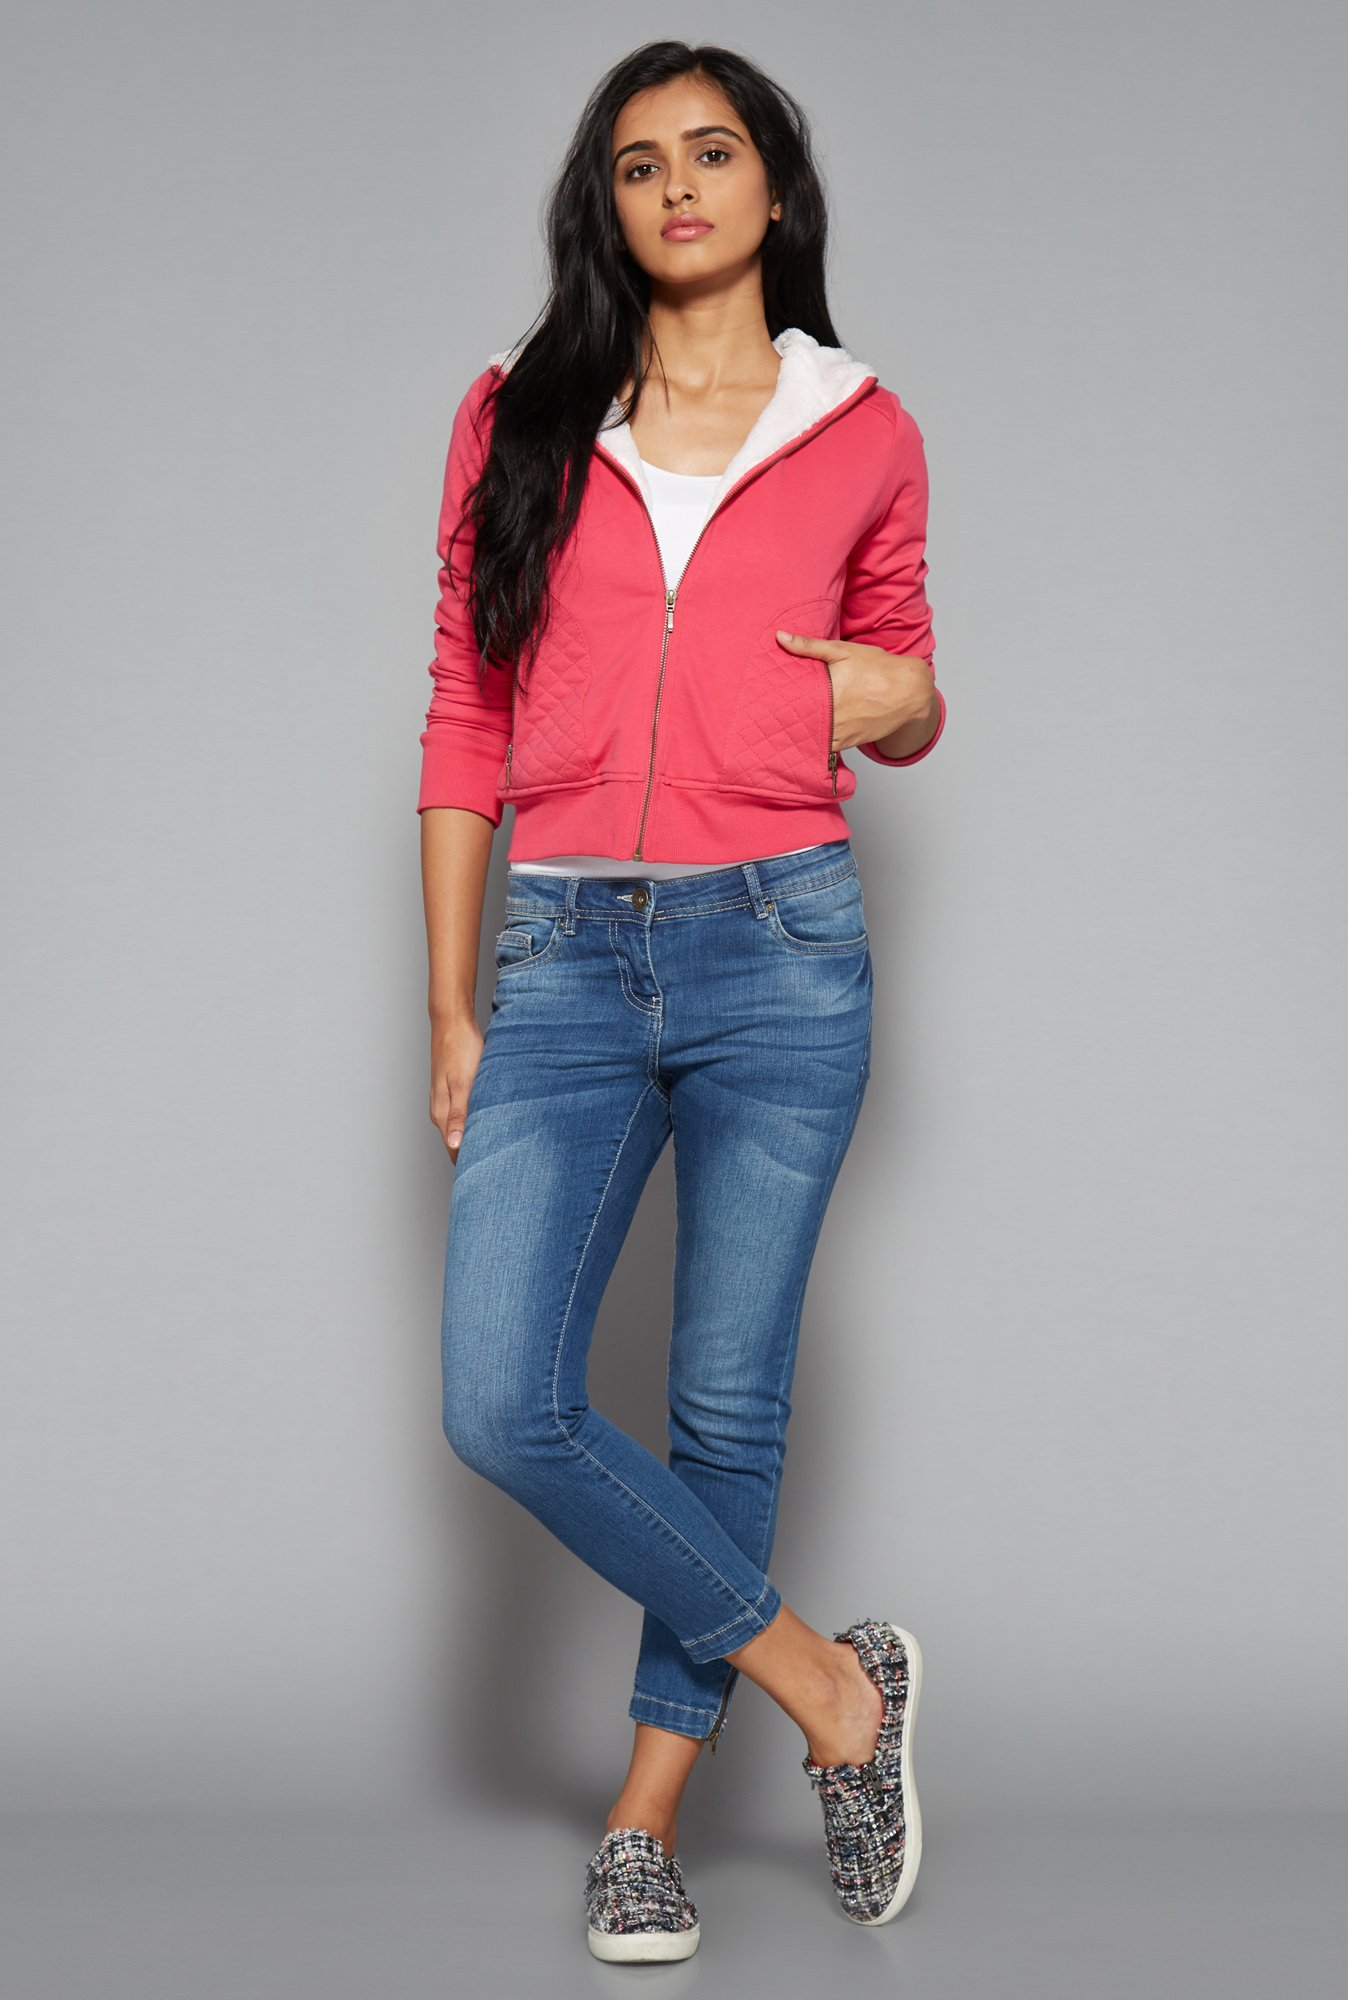 Nuon by Westside Pink Salma Sweater